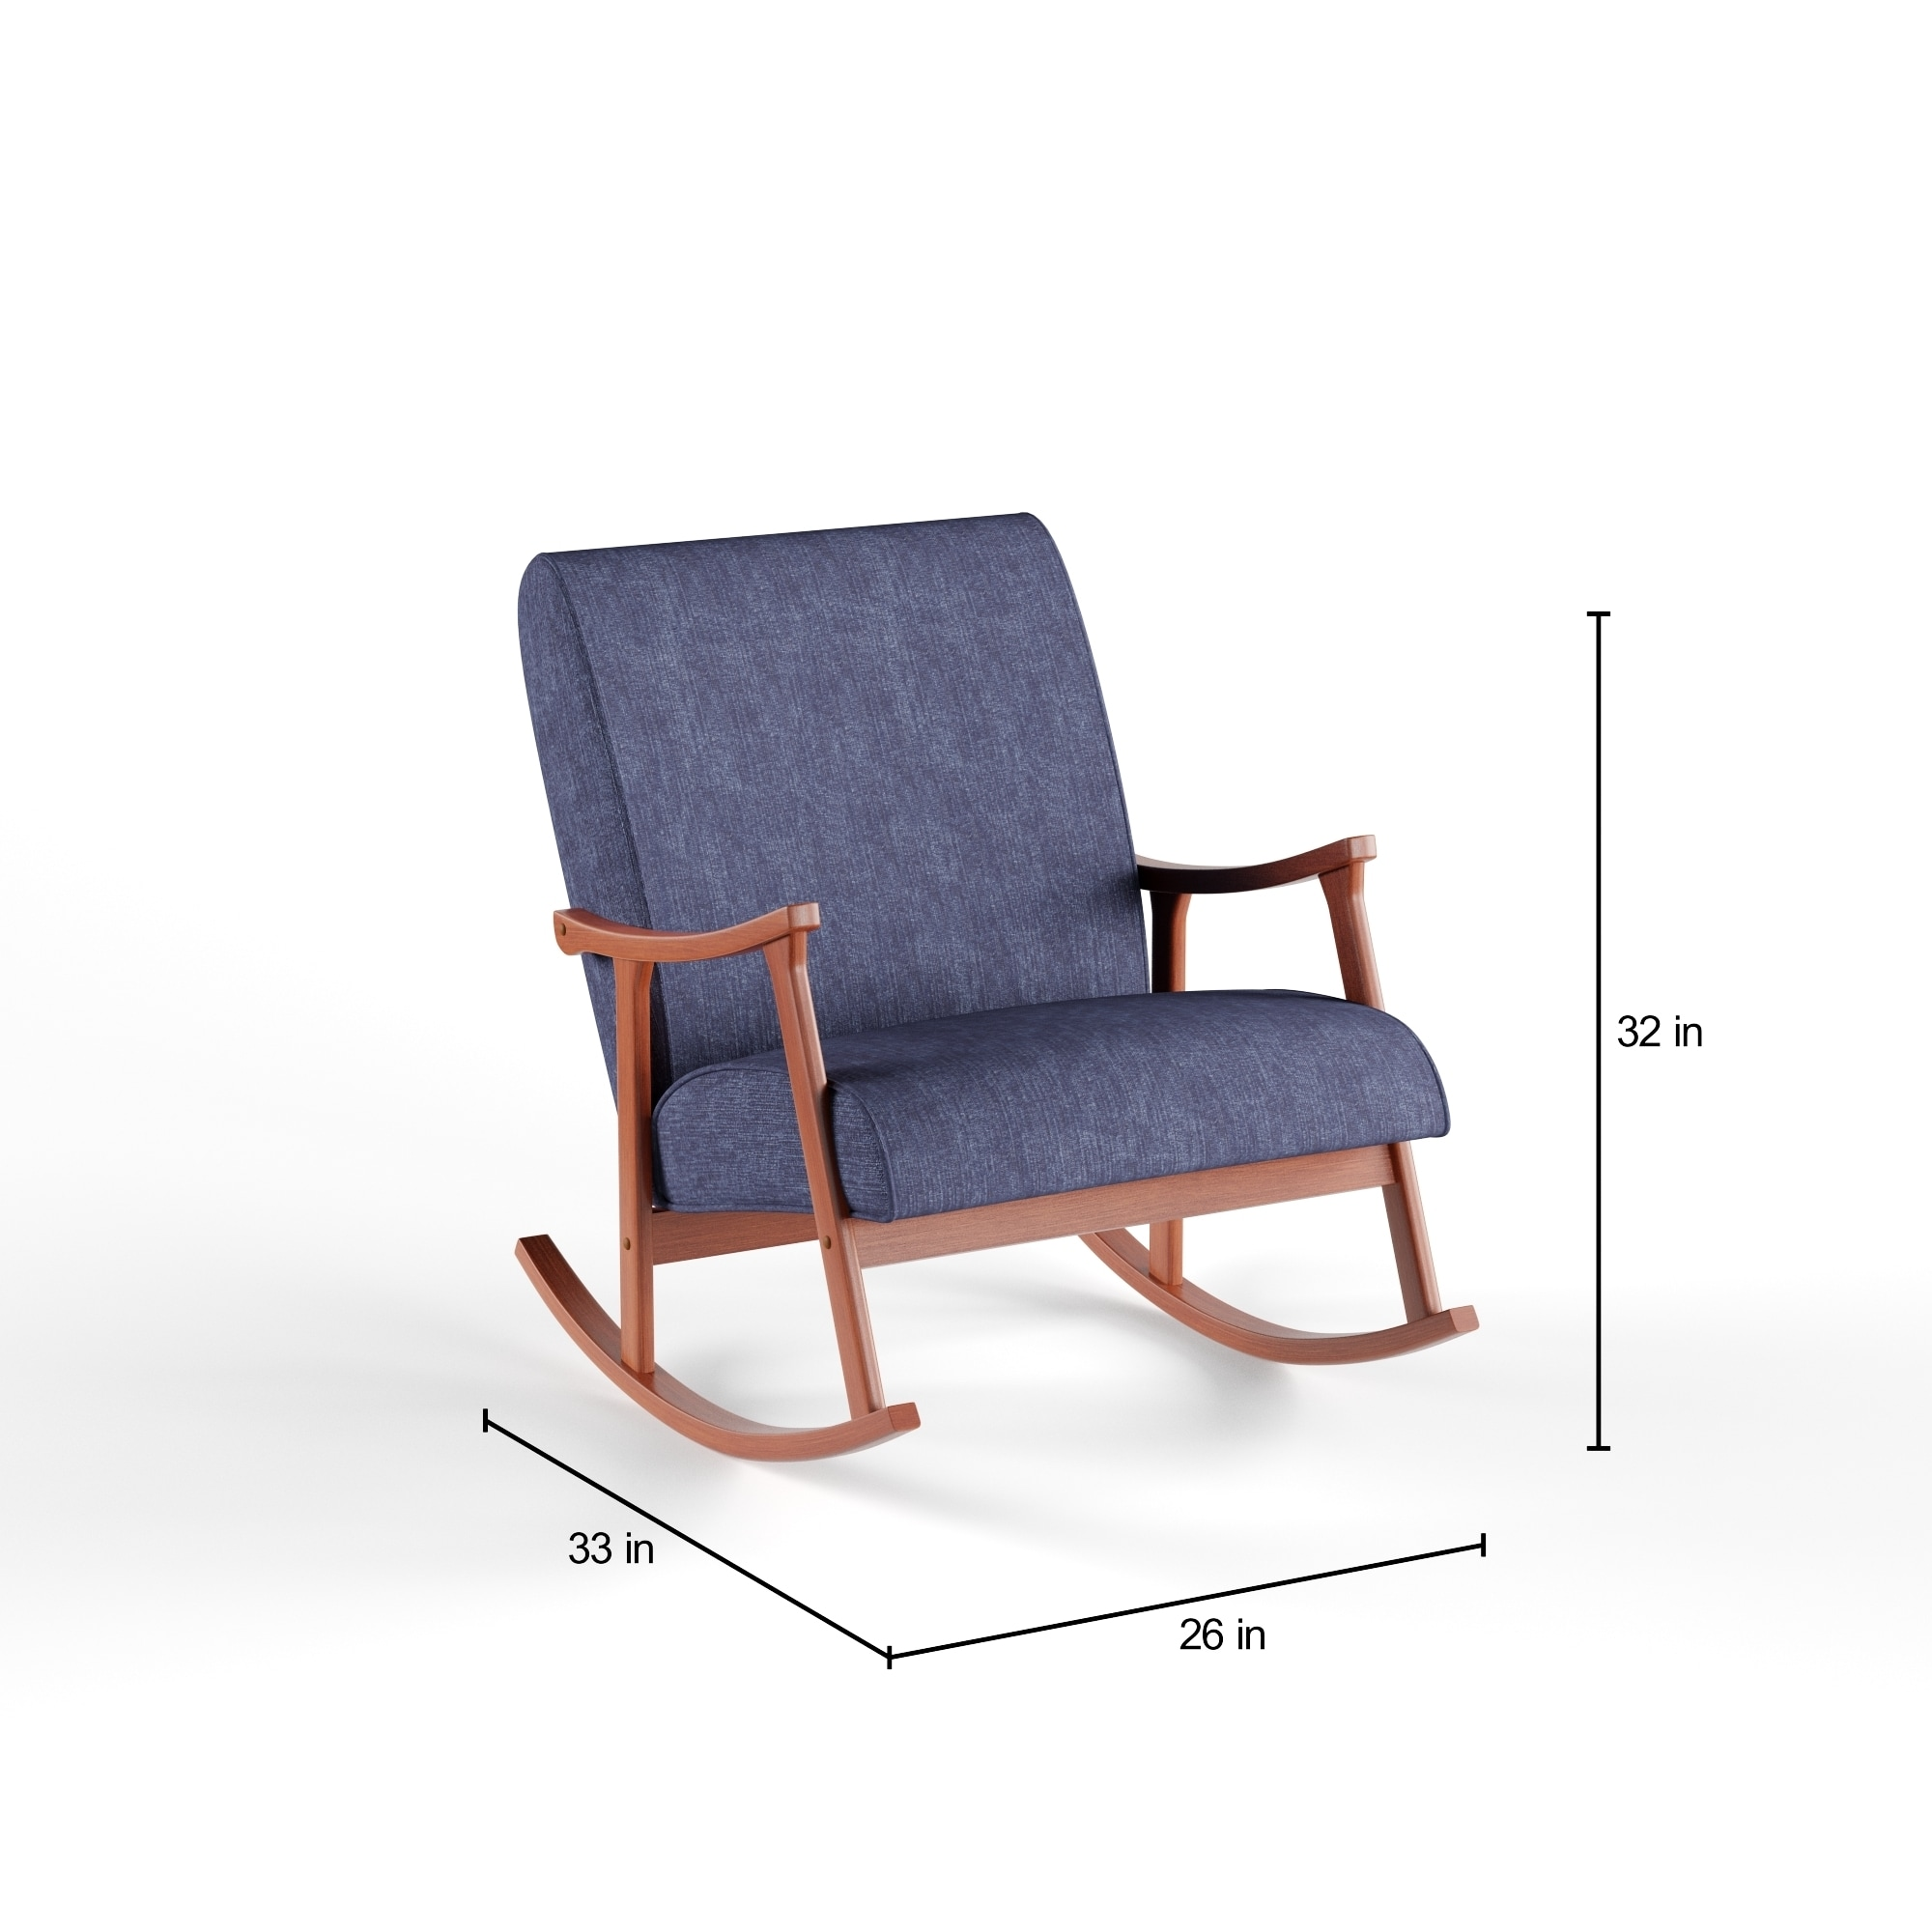 wooden rocking chair. Carson Carrington Retro Indigo Wooden Rocking Chair - Free Shipping Today Overstock 16979532